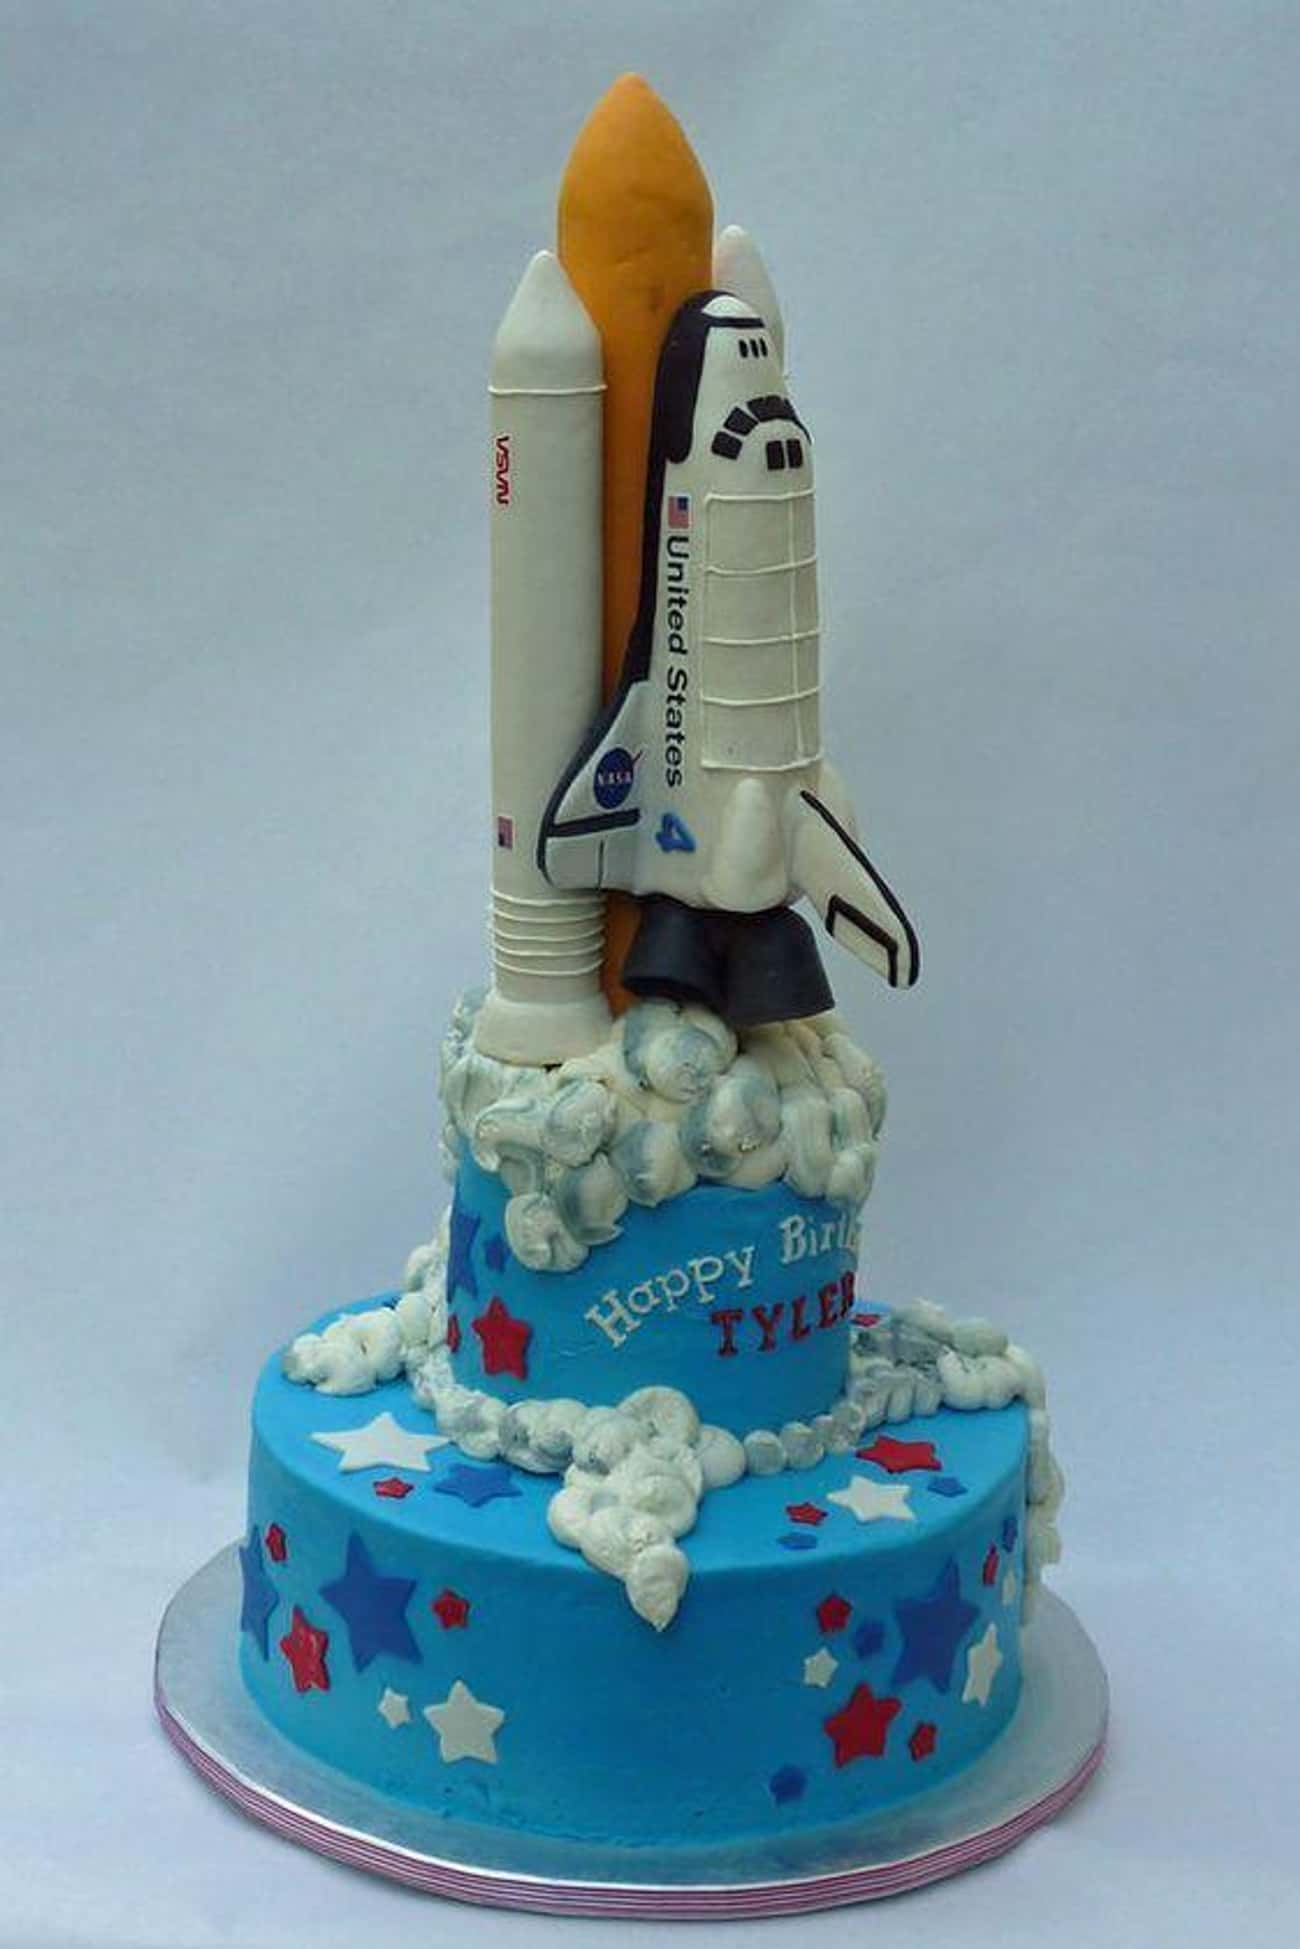 Houston, We Have a Cake is listed (or ranked) 1 on the list 36 Space Cakes That Are Out of This World